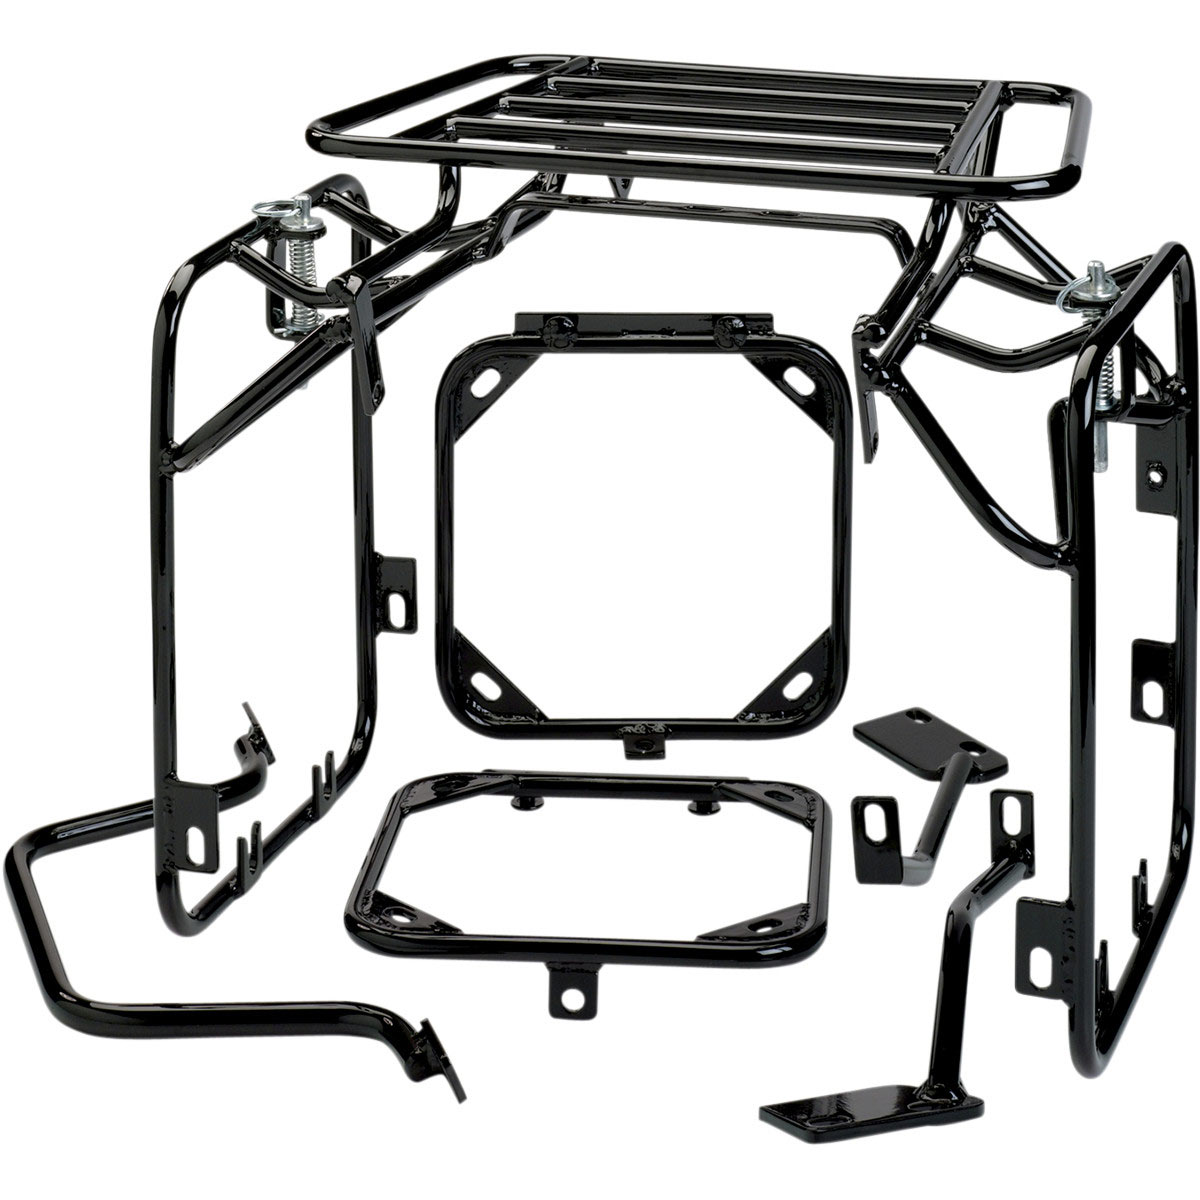 Moose Expedition Luggage Rack System for DR650SE 96-15